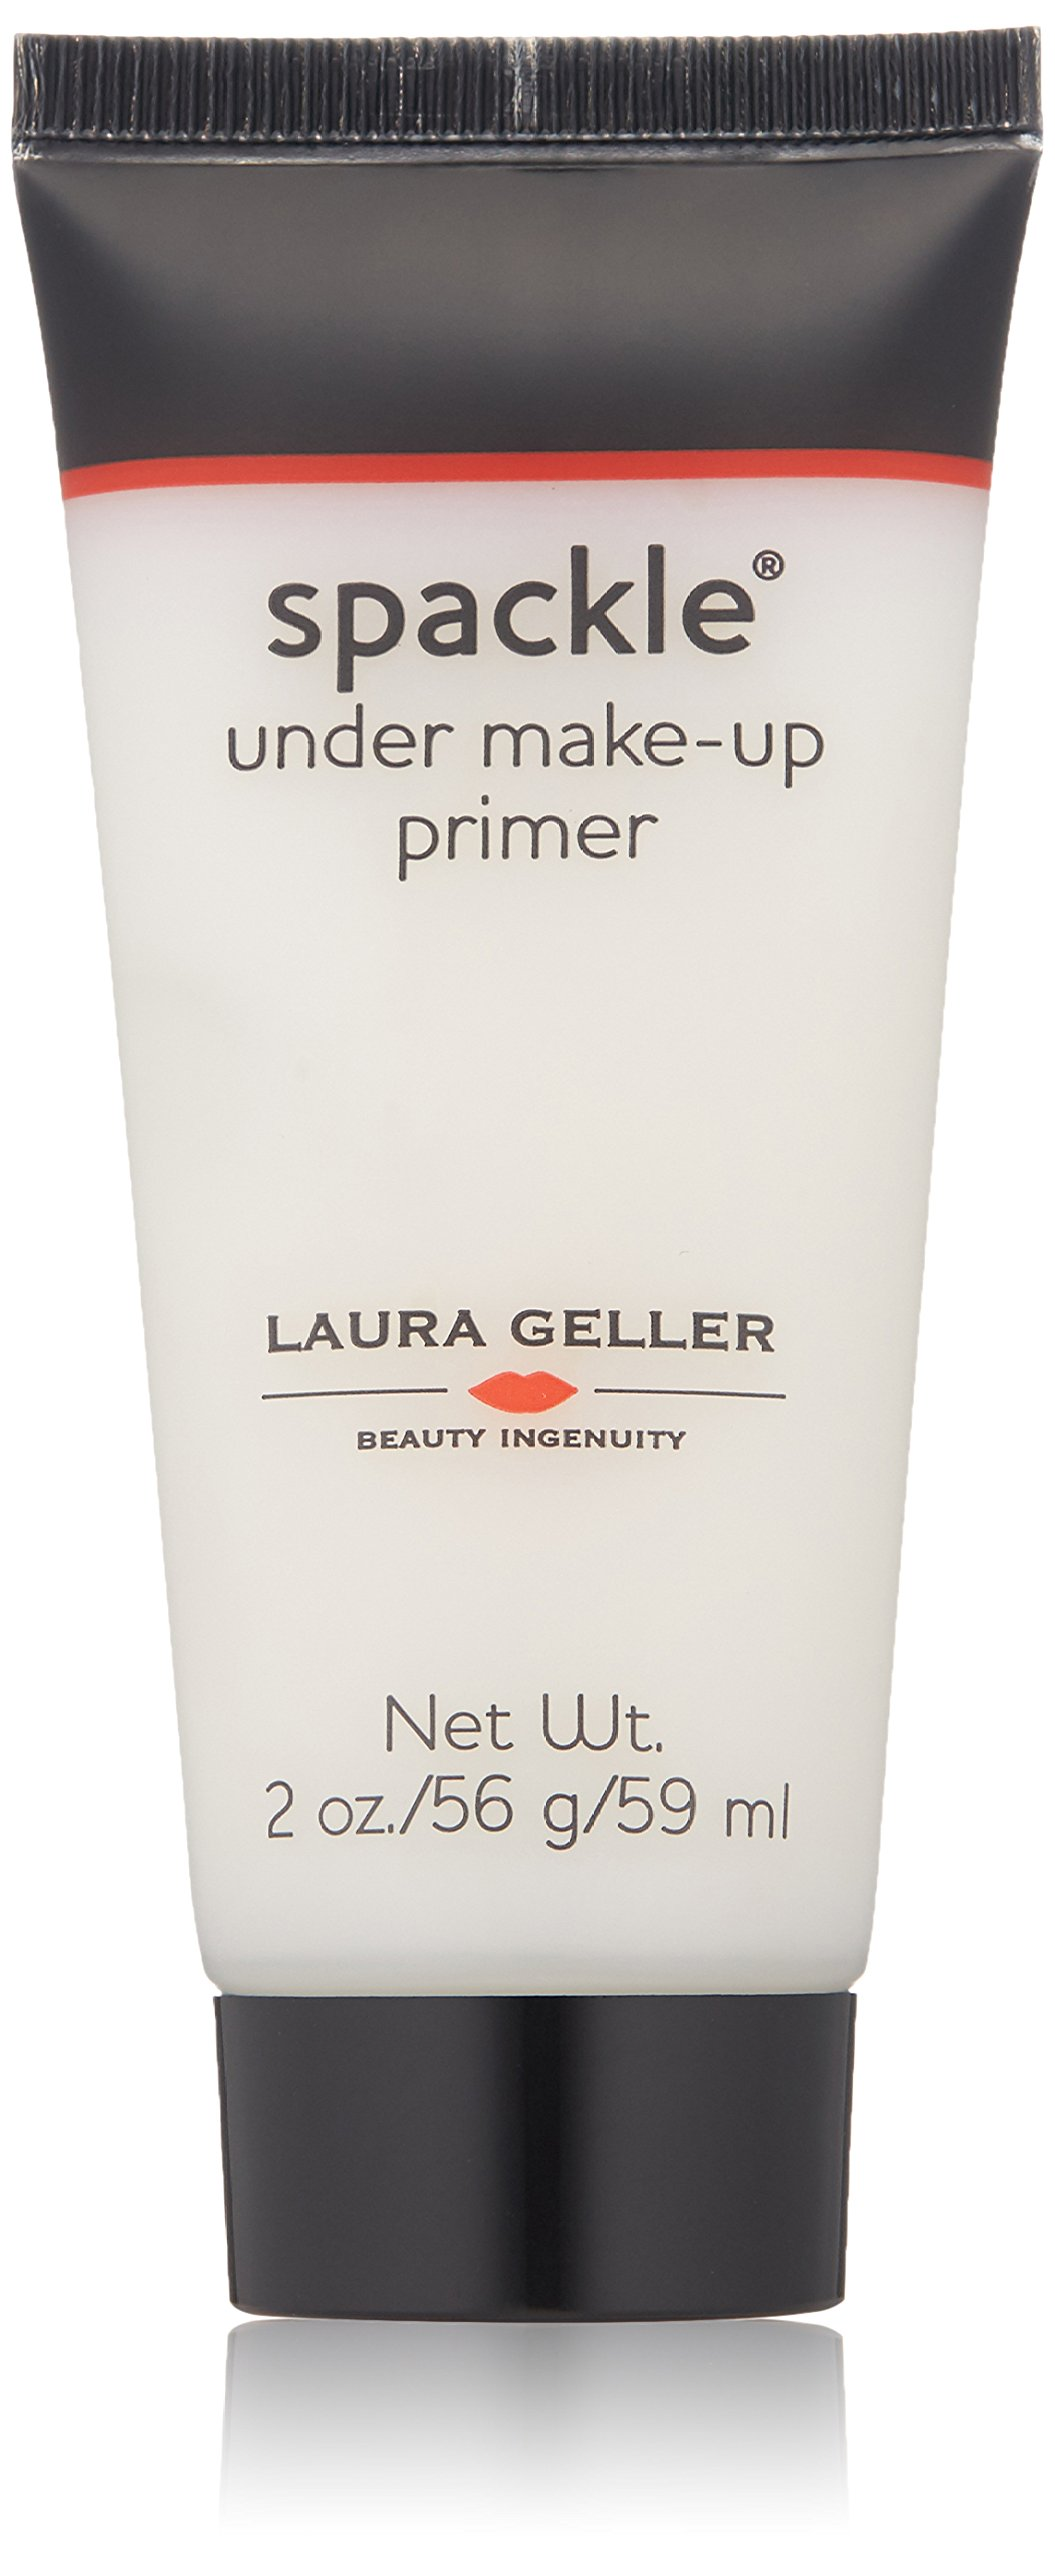 Laura Geller New York Spackle Original Under Makeup Primer, 2 Fl Oz